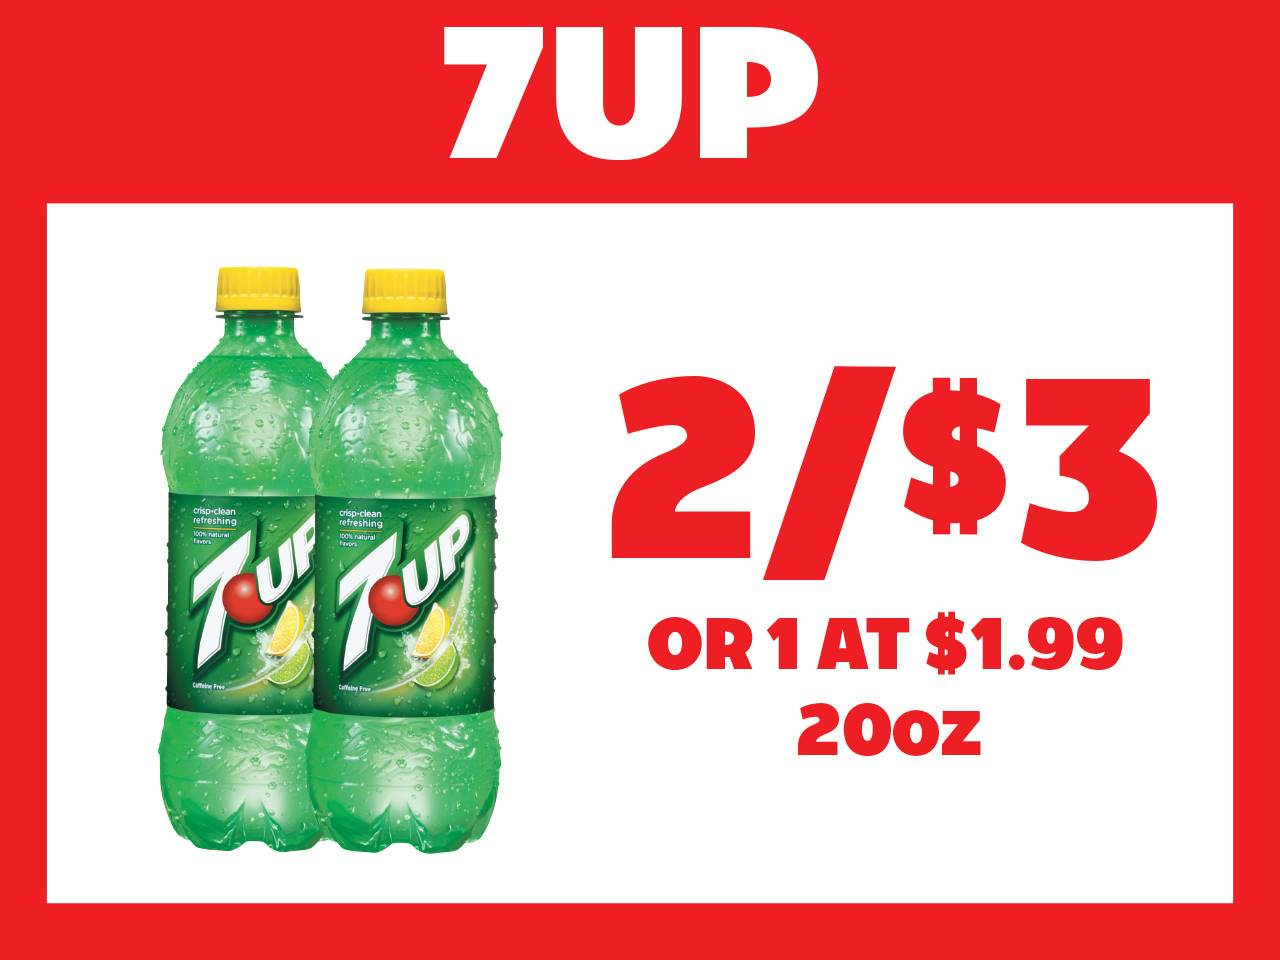 20oz 7Up 2 for $3 or 1 at $1.99